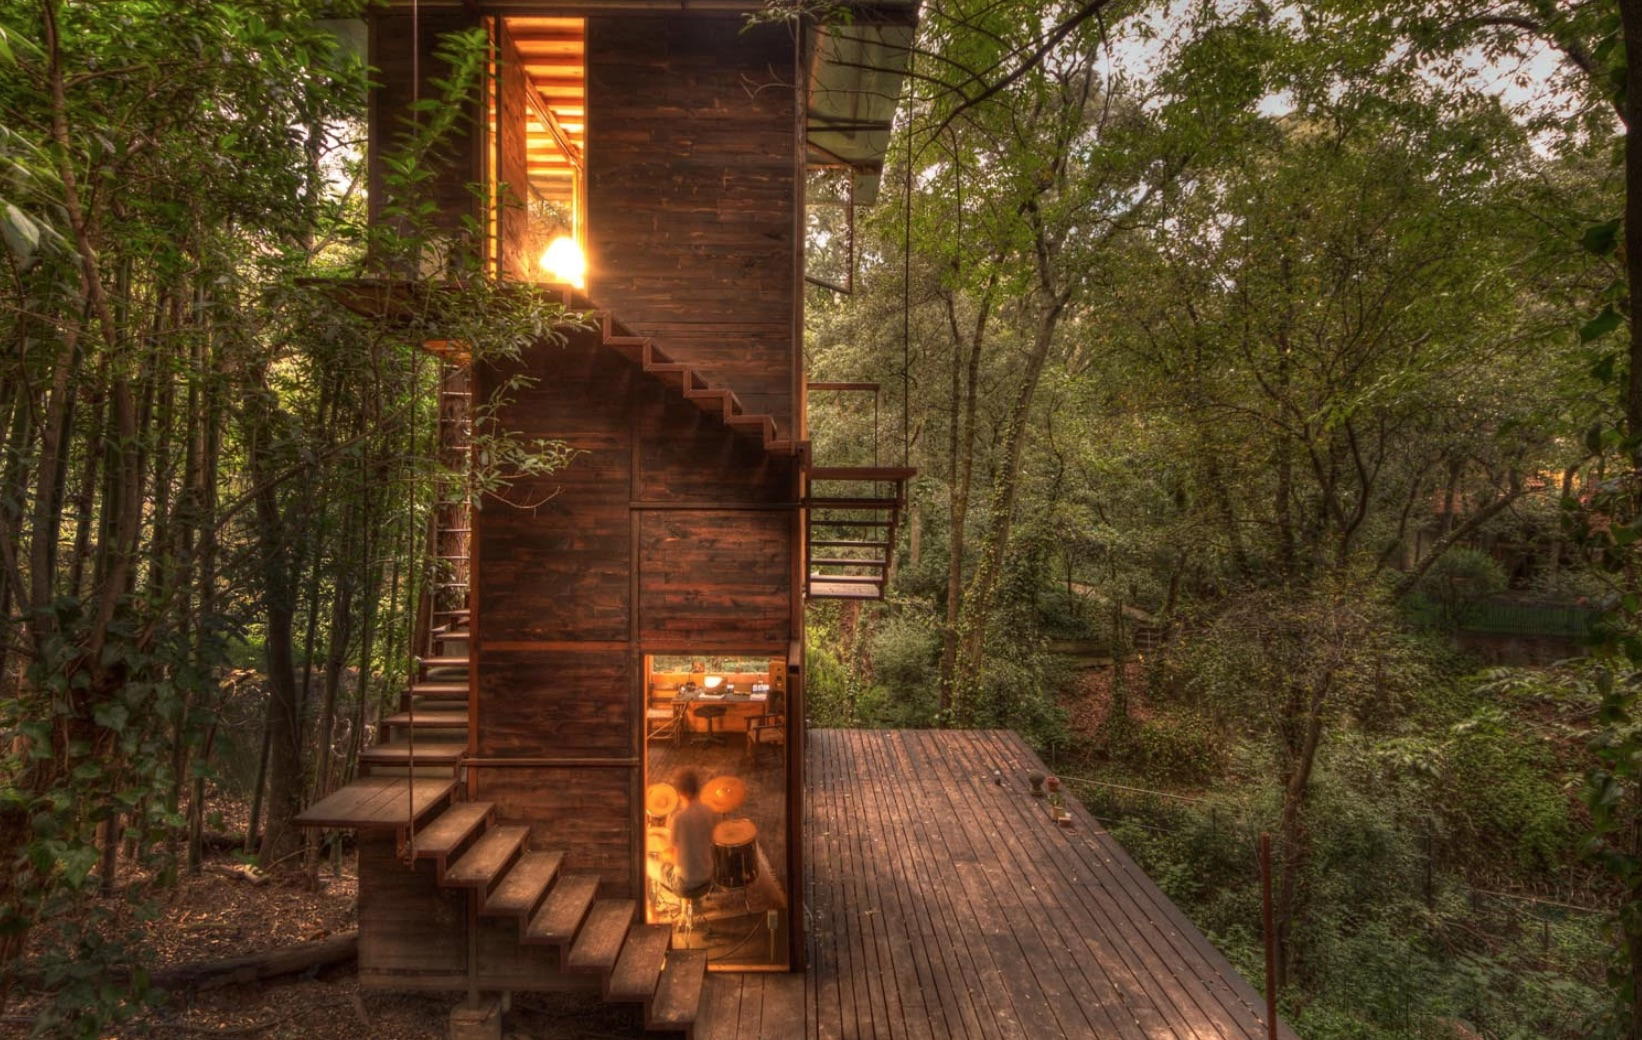 Gorgeous timber home stretches vertically into the forest